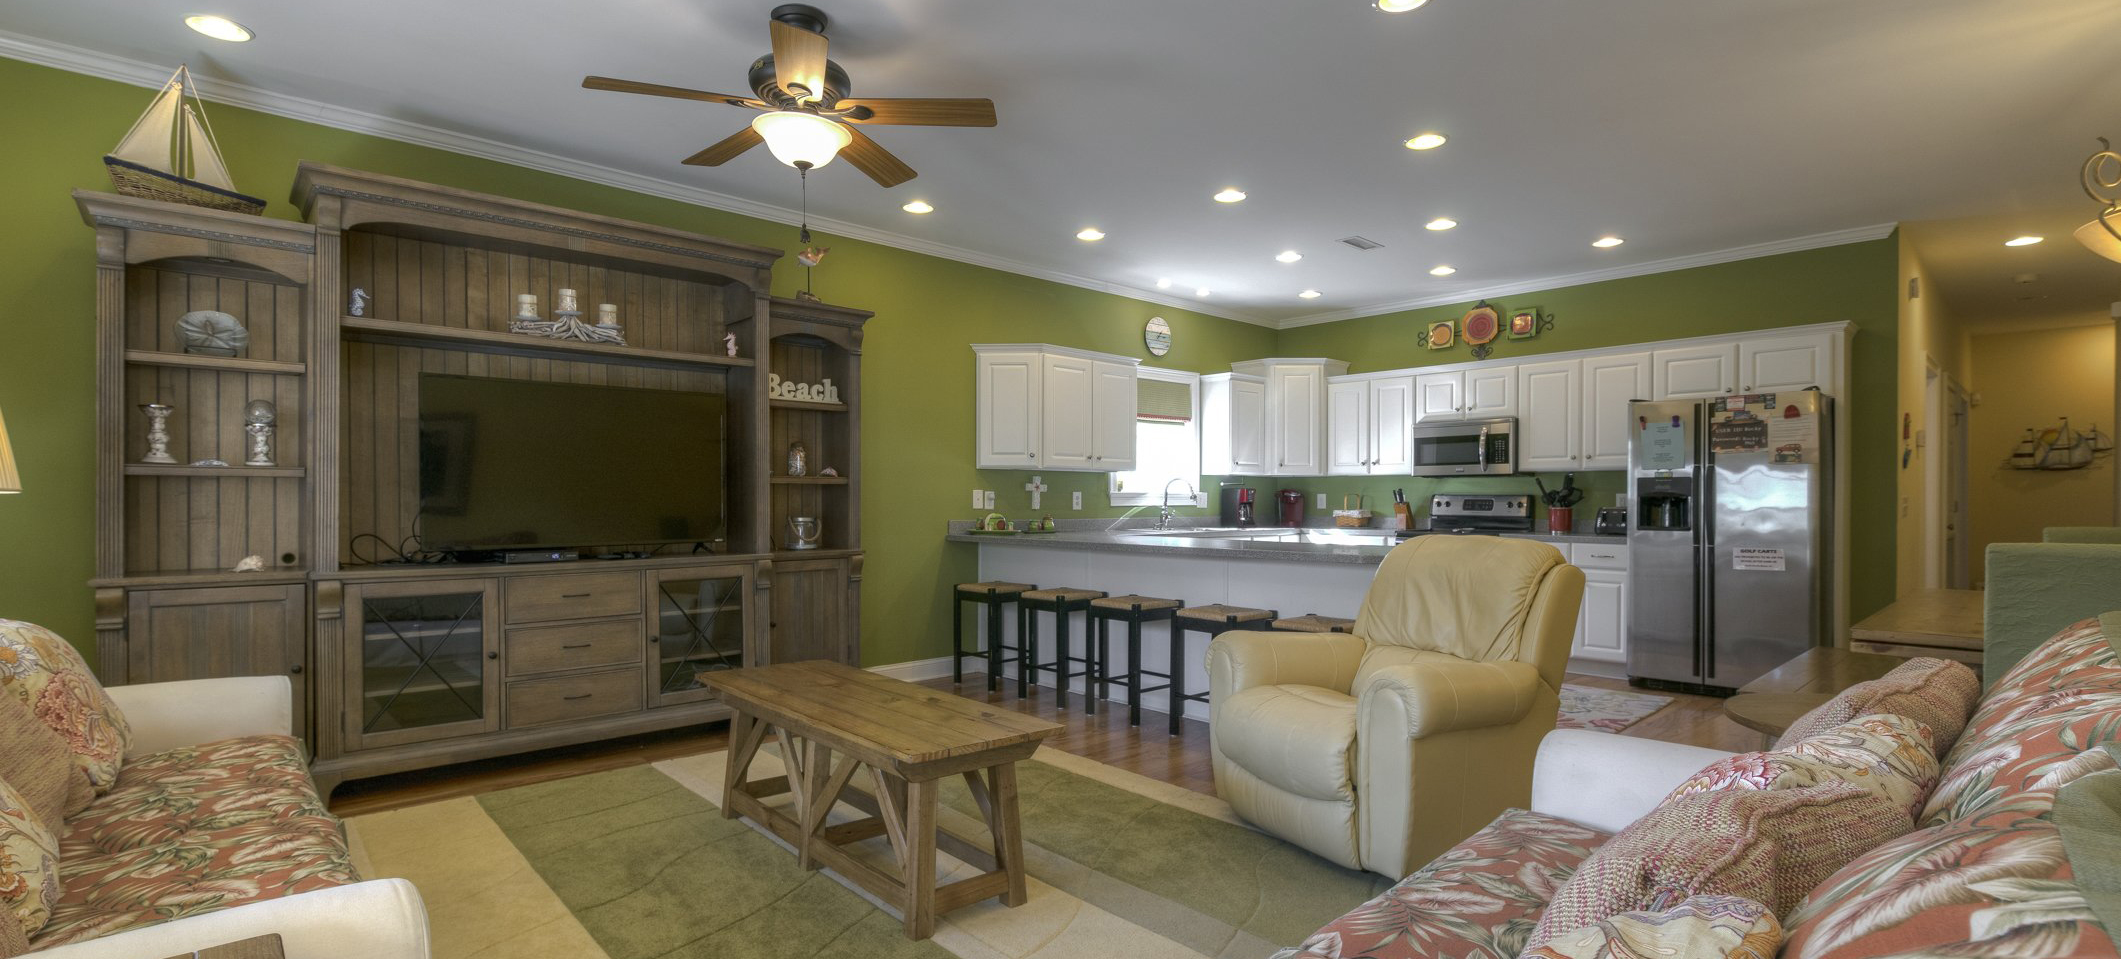 Terrific The House On Havens In North Myrtle Beach 4 Bedroom Luxury Best Image Libraries Weasiibadanjobscom